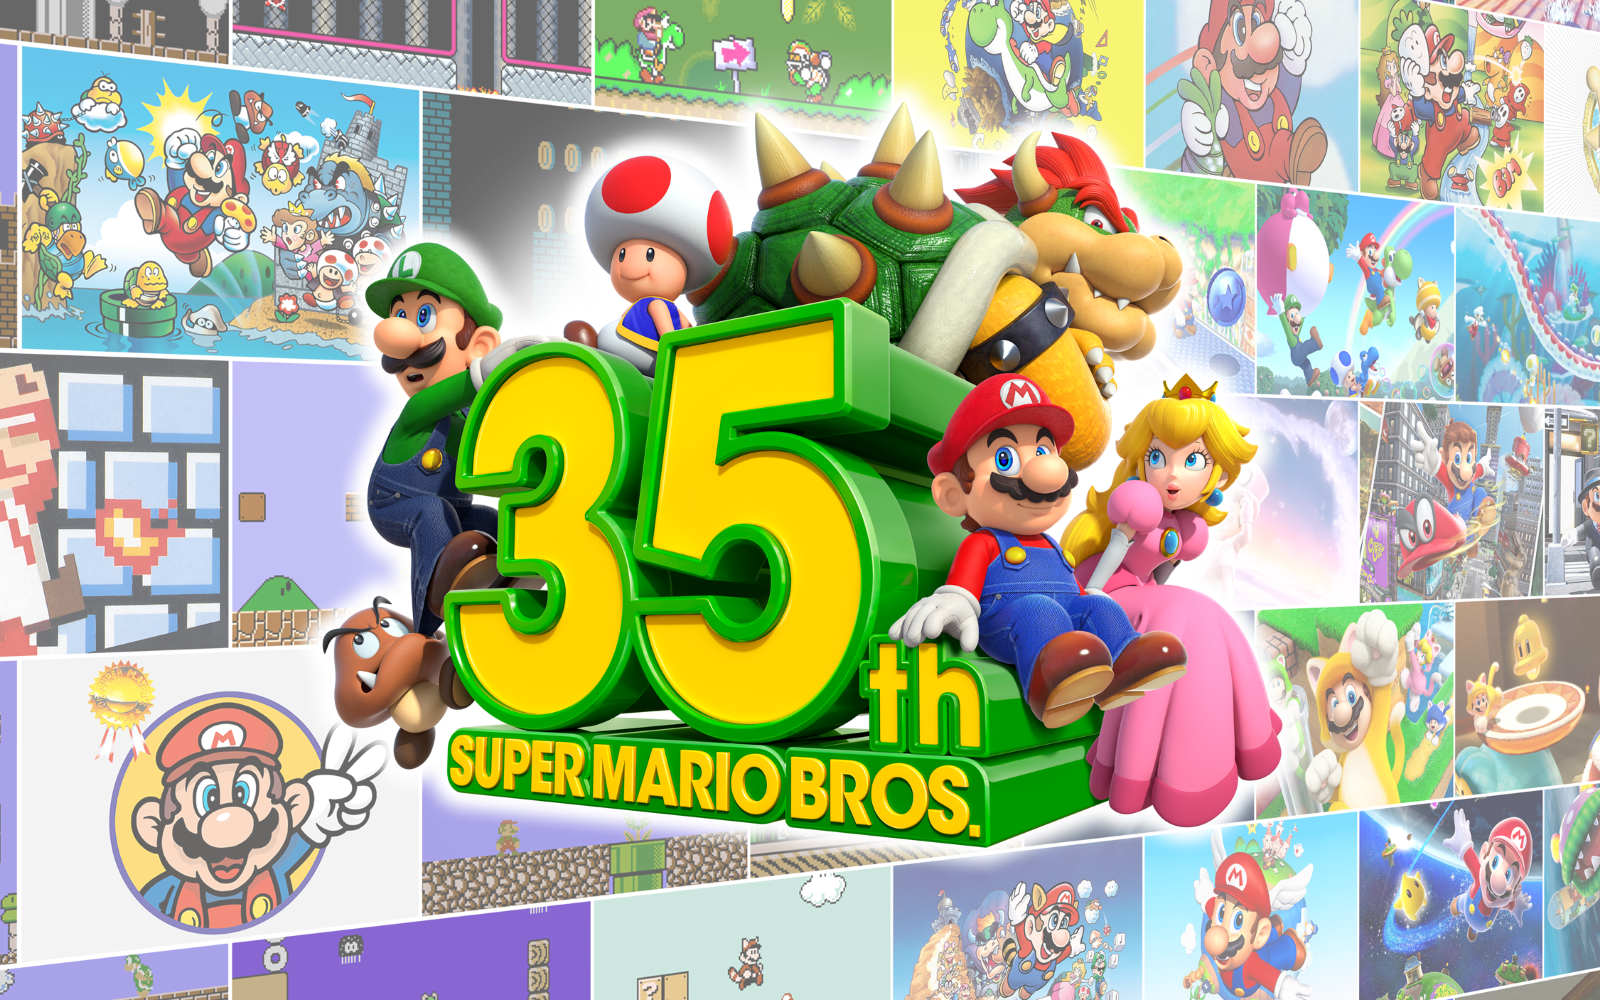 Super Mario Bros. 35th Anniversary – A Host Of Games, Products & Events Announced!